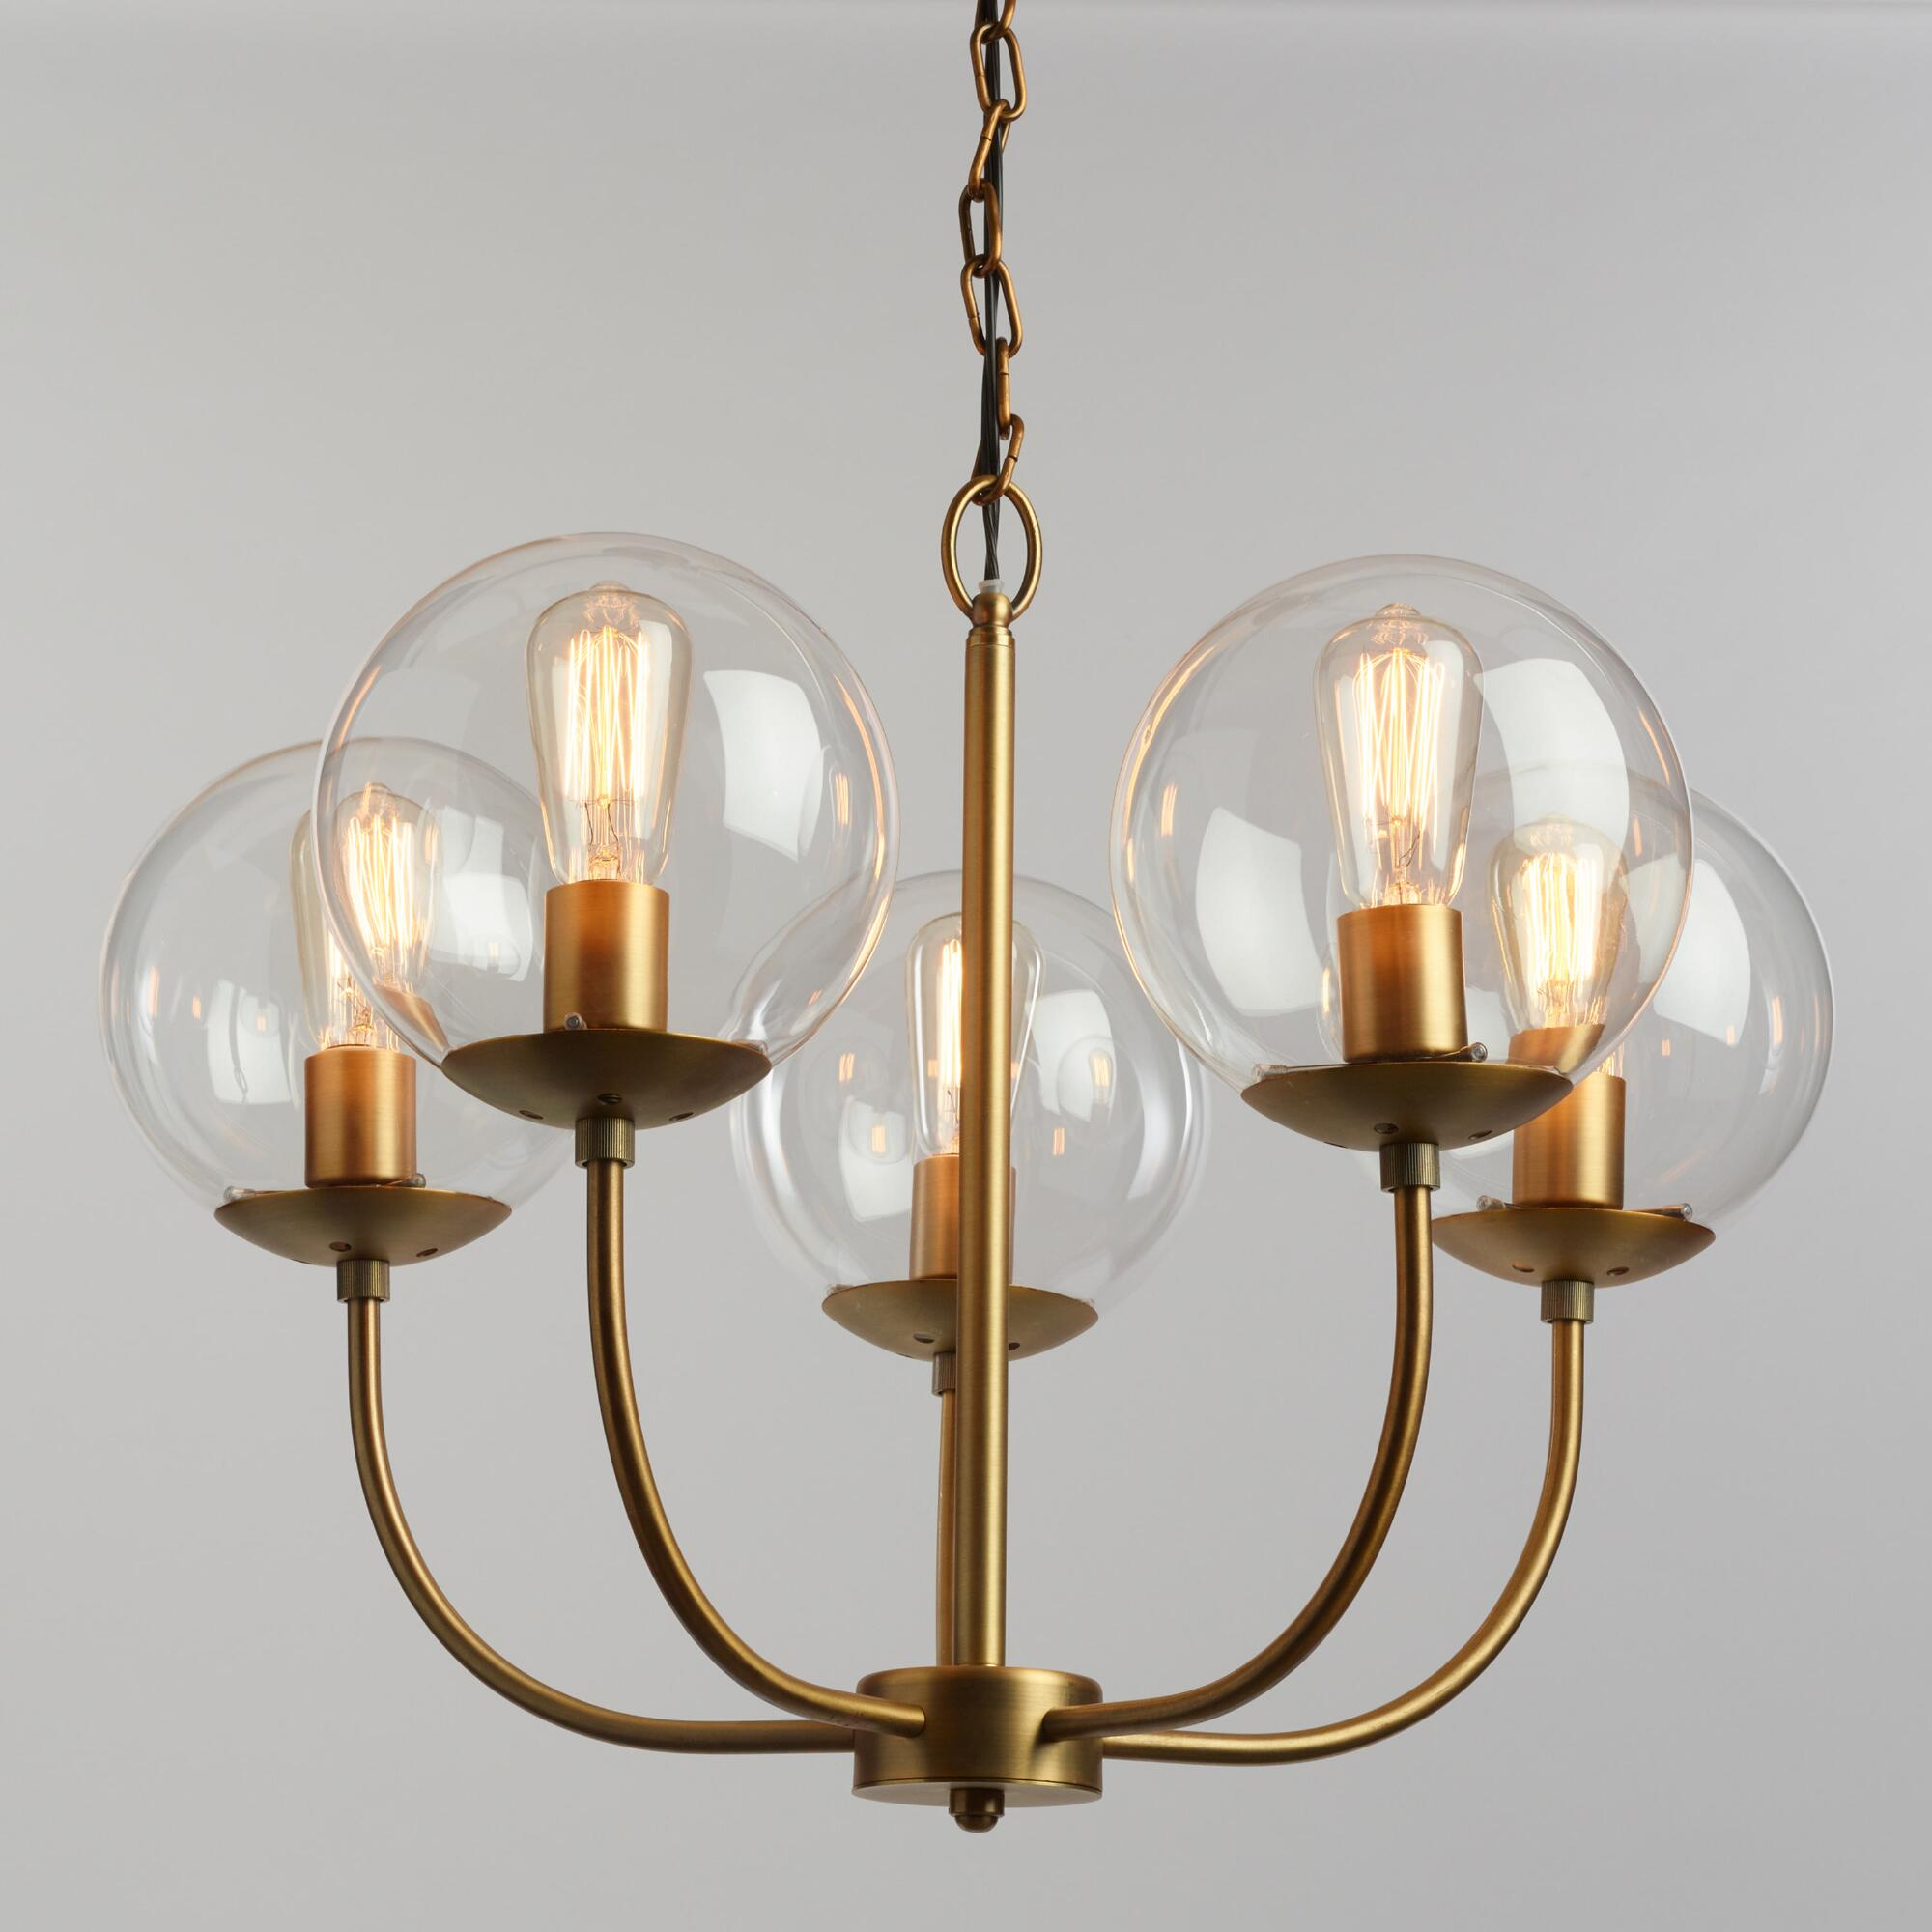 product by cosmos copper wright horsfall light pendant original and horsfallwright graphite lighting